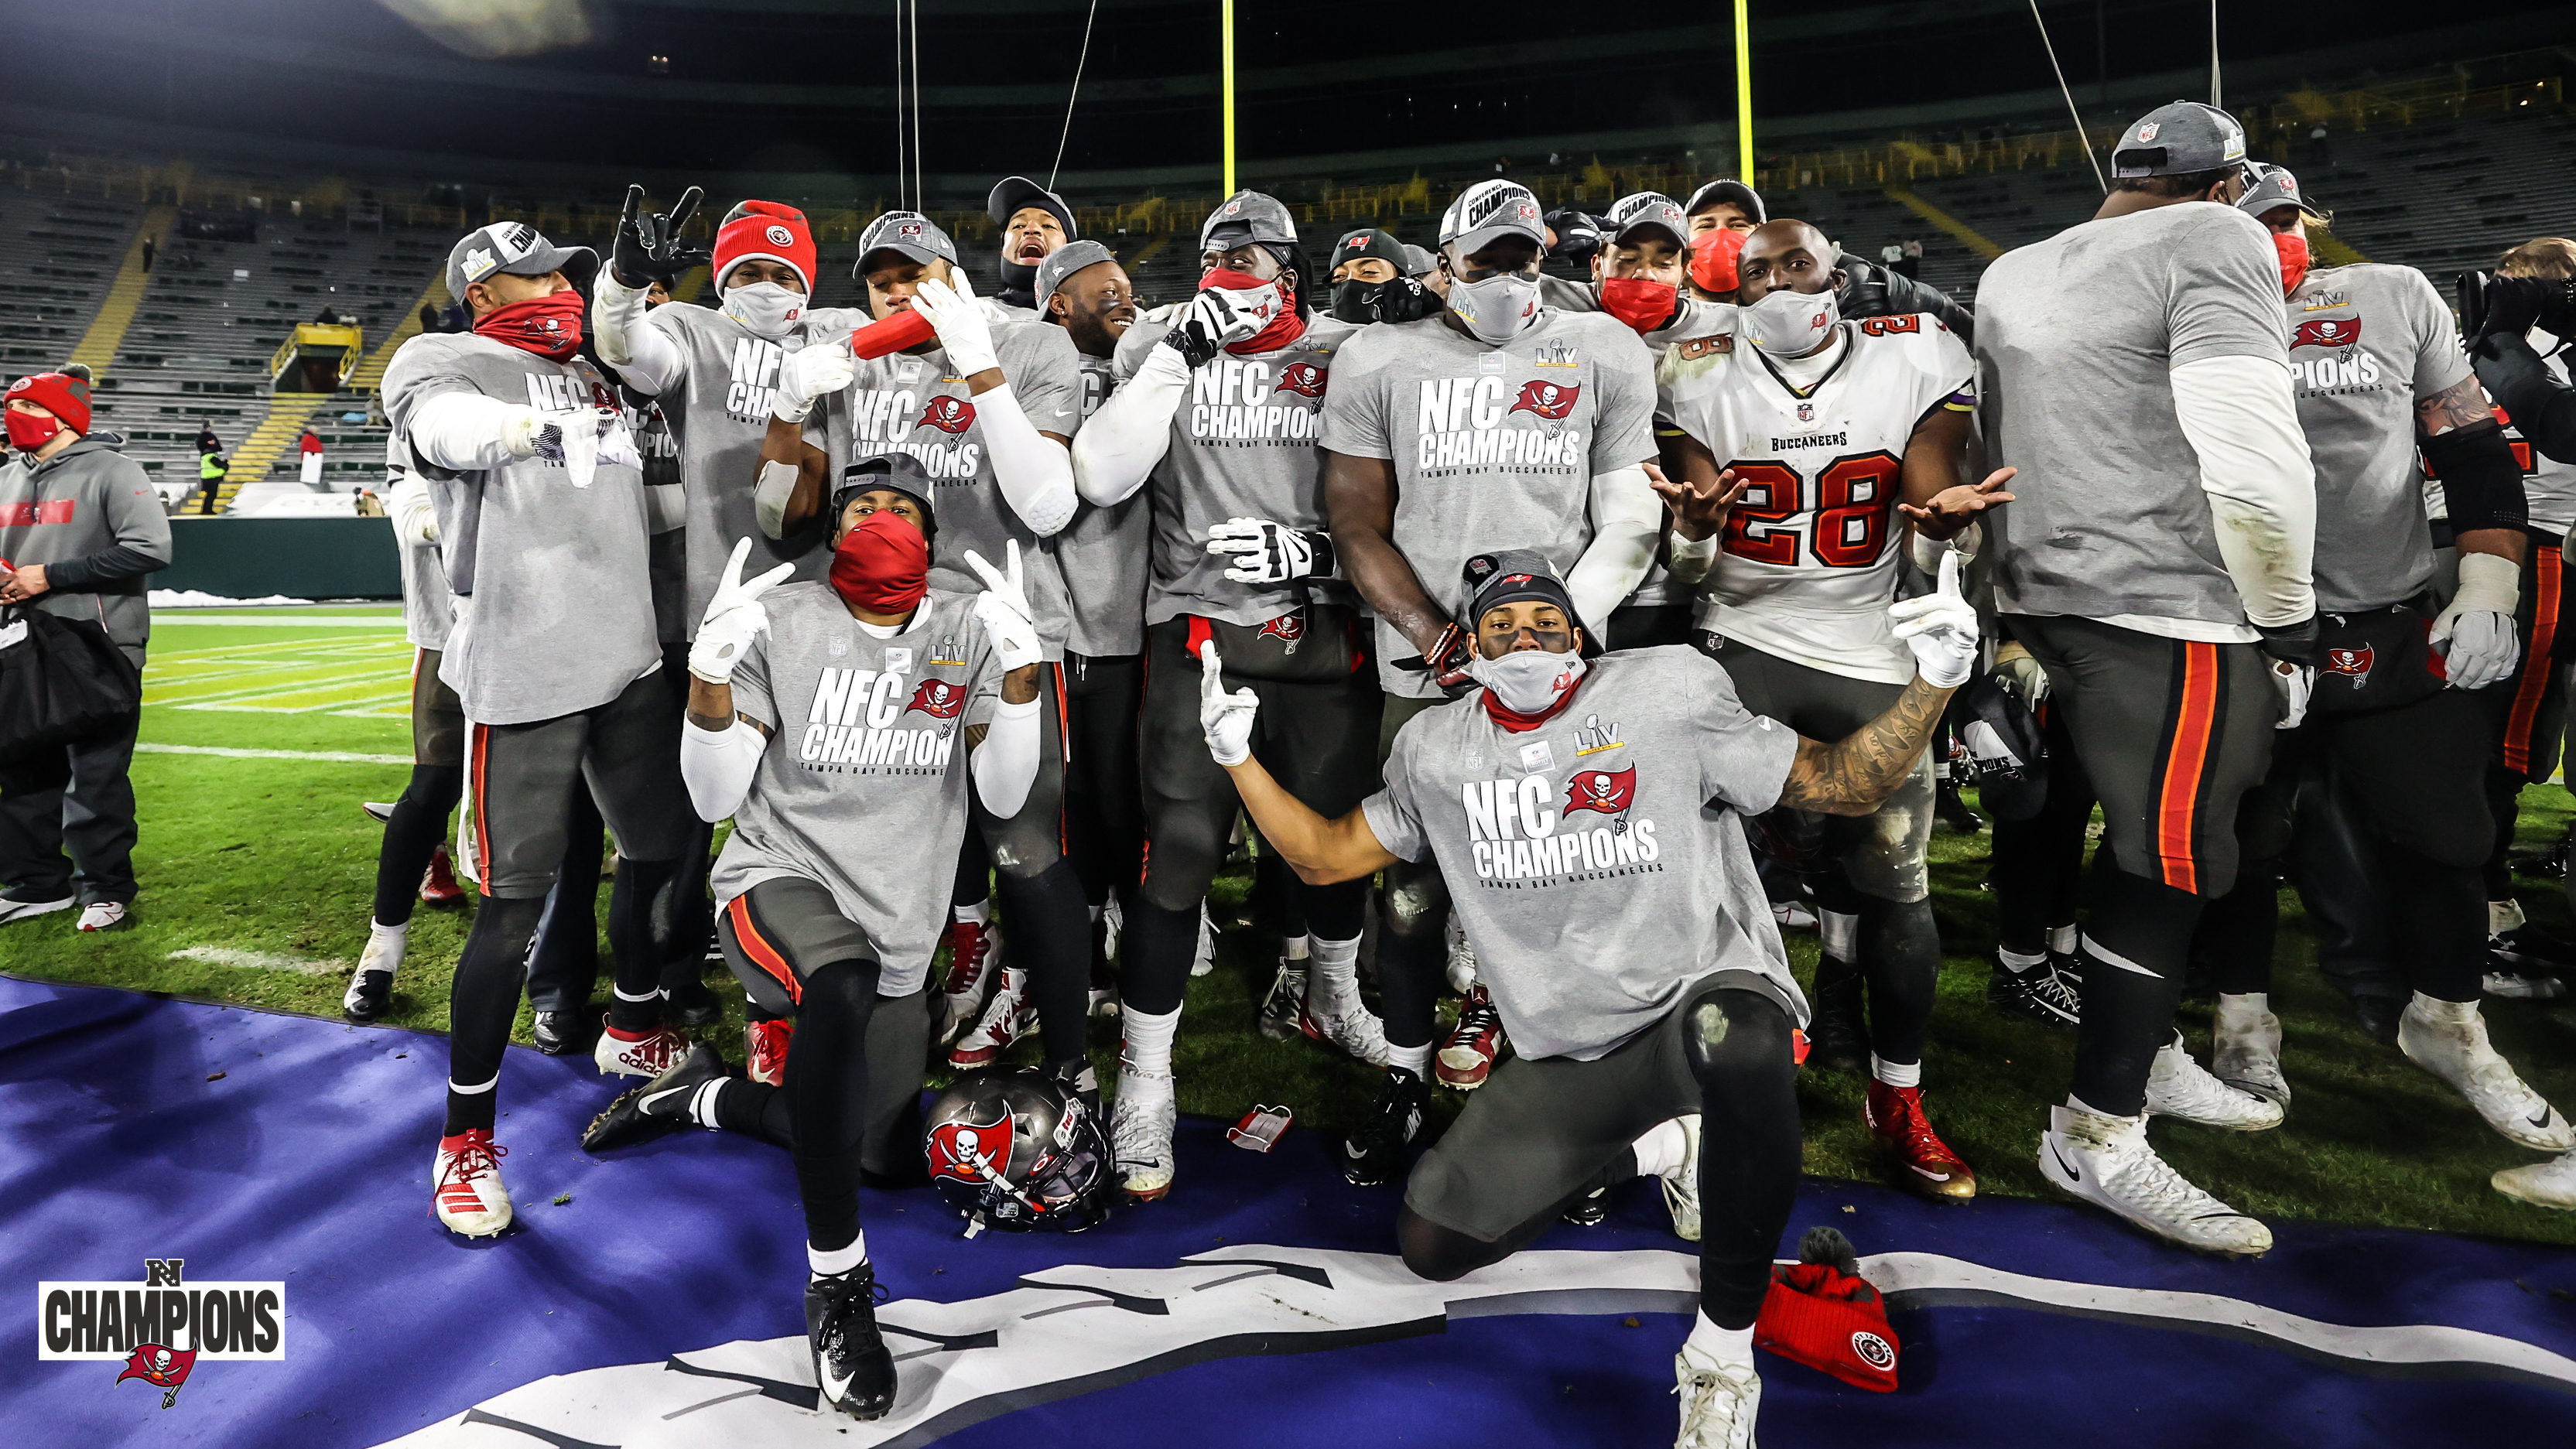 Buccaneers y Chiefs disputarán el Super Bowl LV. Foto: Twitter Tampa Bay